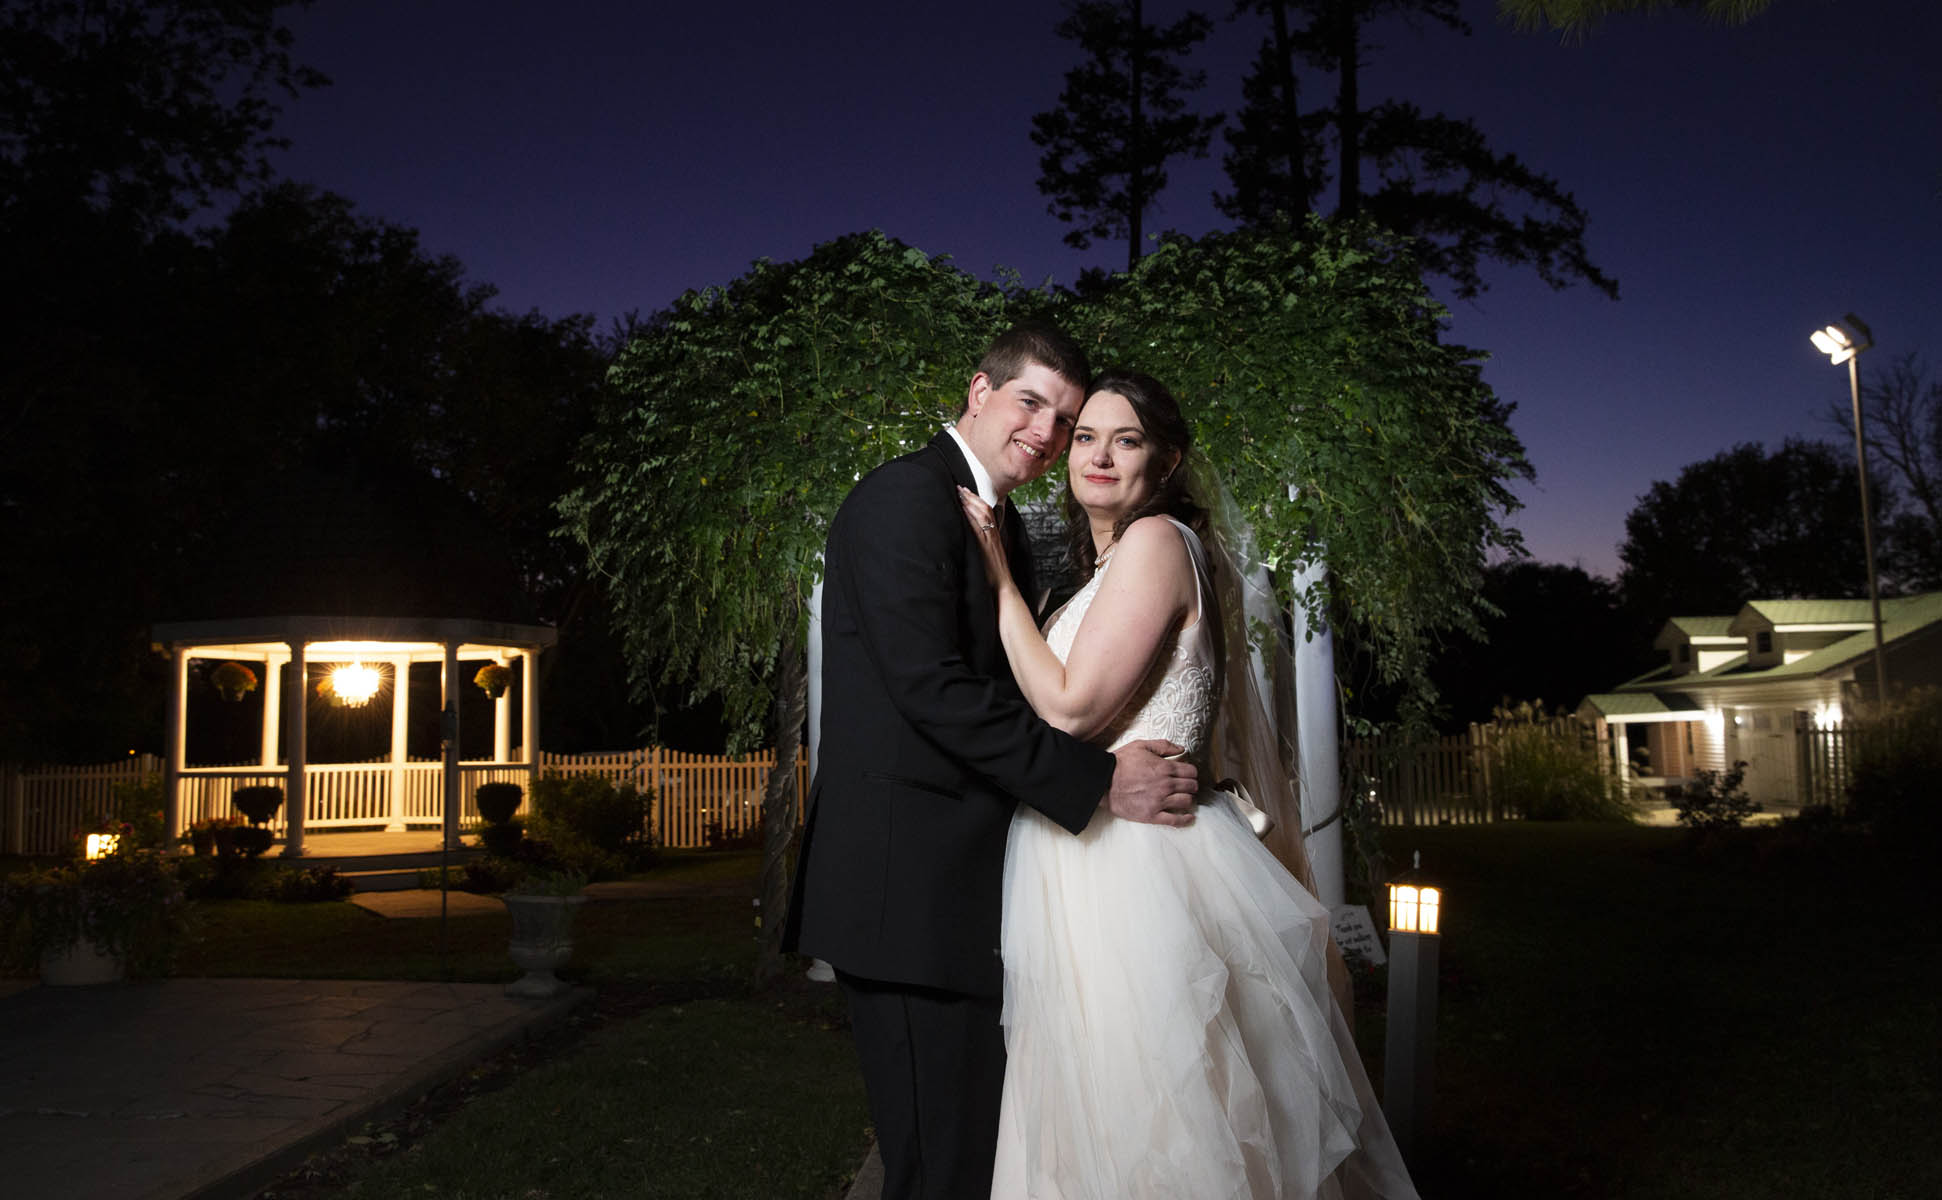 Wedding of Jenny Angelo & Alex Meyer Saturday 12 October 2019 at Greene Gables in White HallPhotos by Steve & Tiffany of Warmowski Photography http://www.warmowskiphoto.com 217.473.5581 - 191012